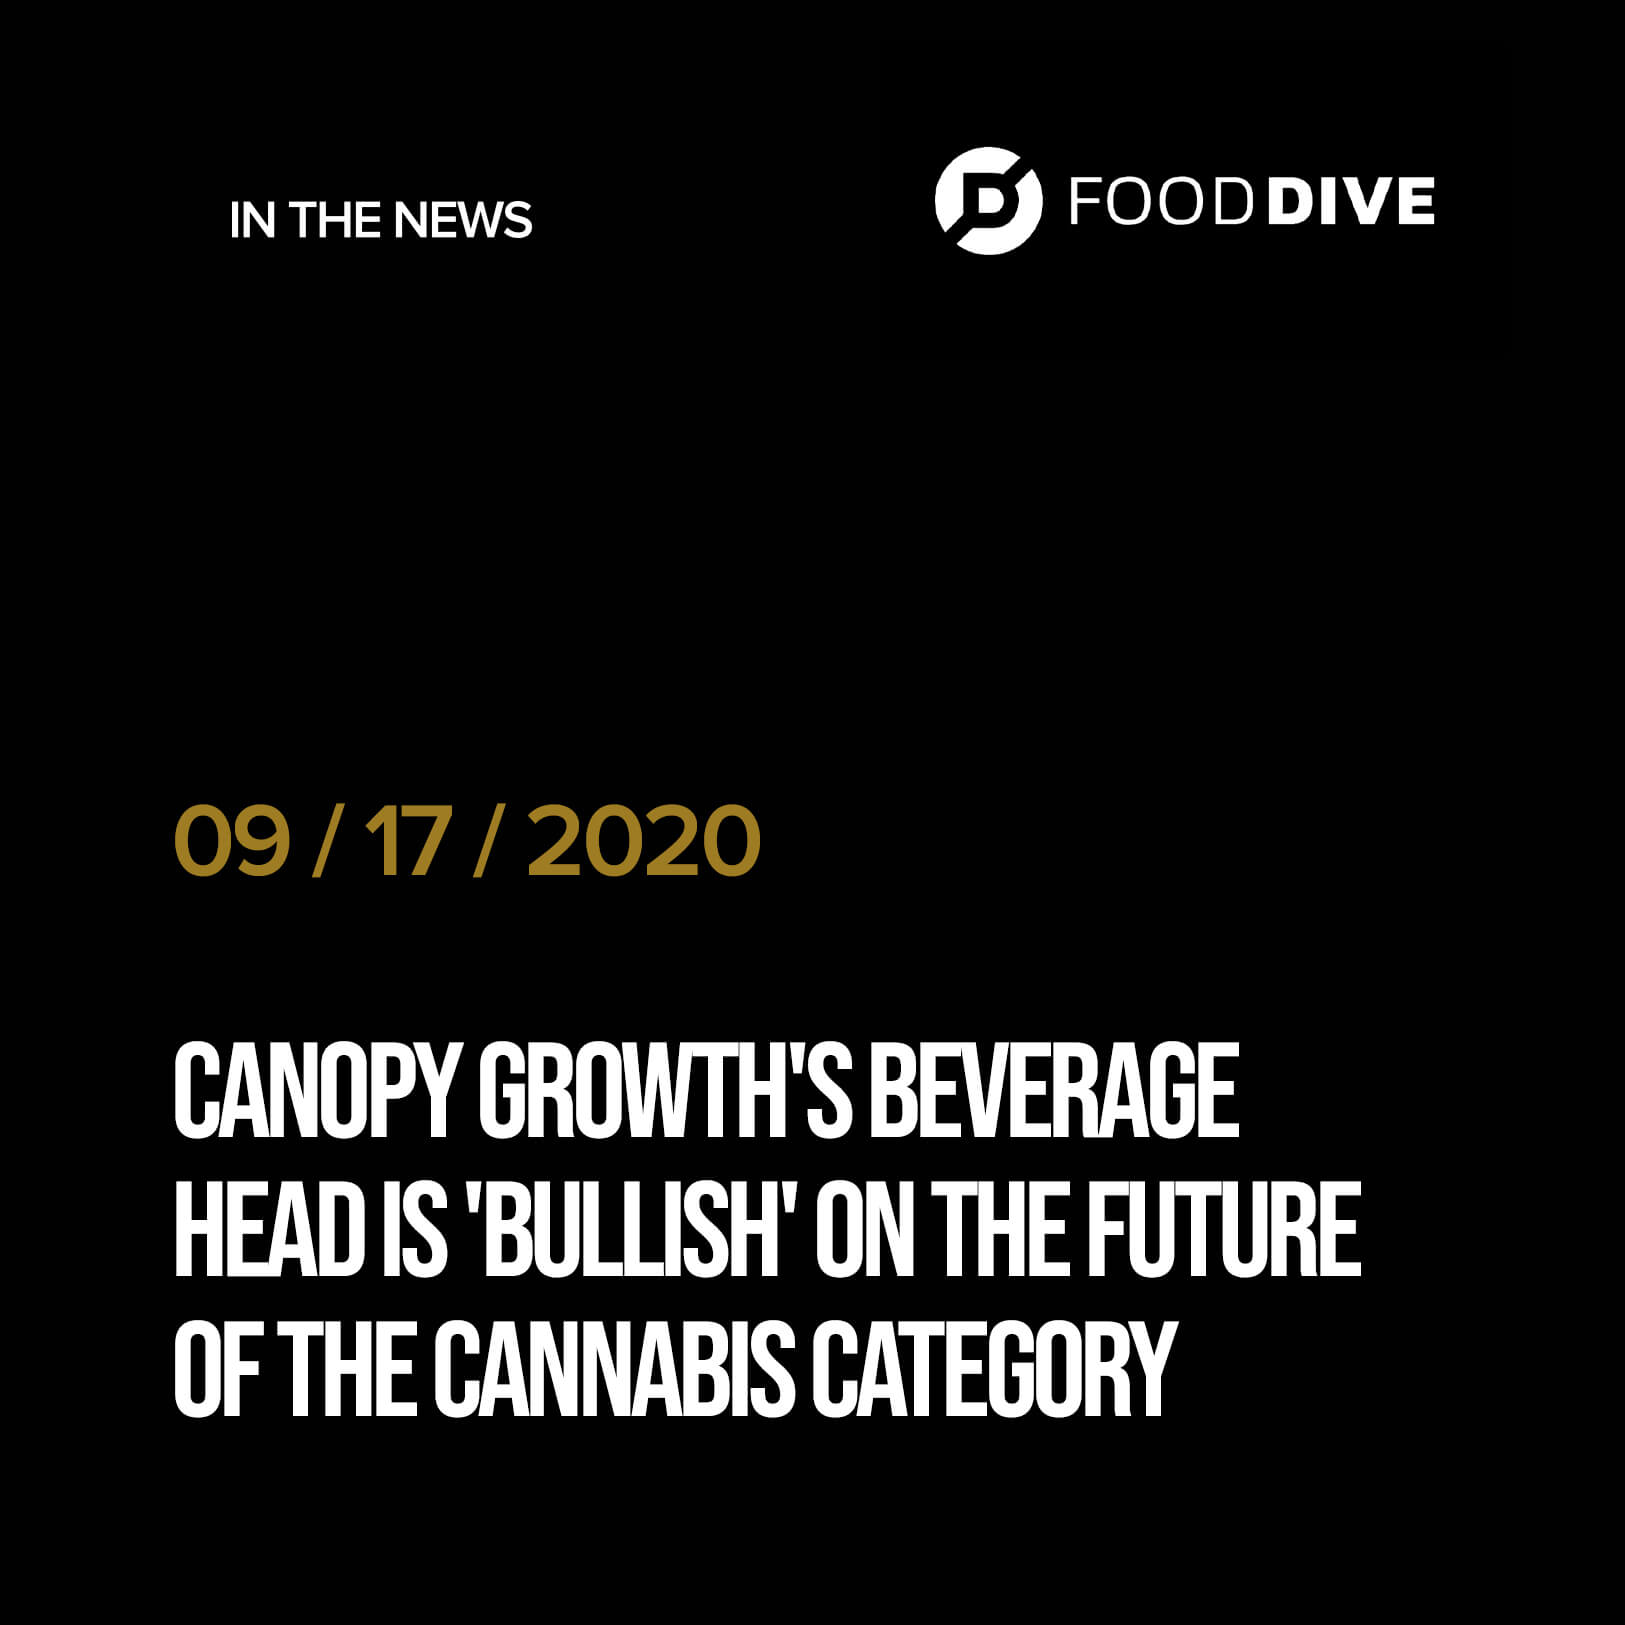 Canopy Growth's beverage head is 'bullish' on the future of the cannabis category